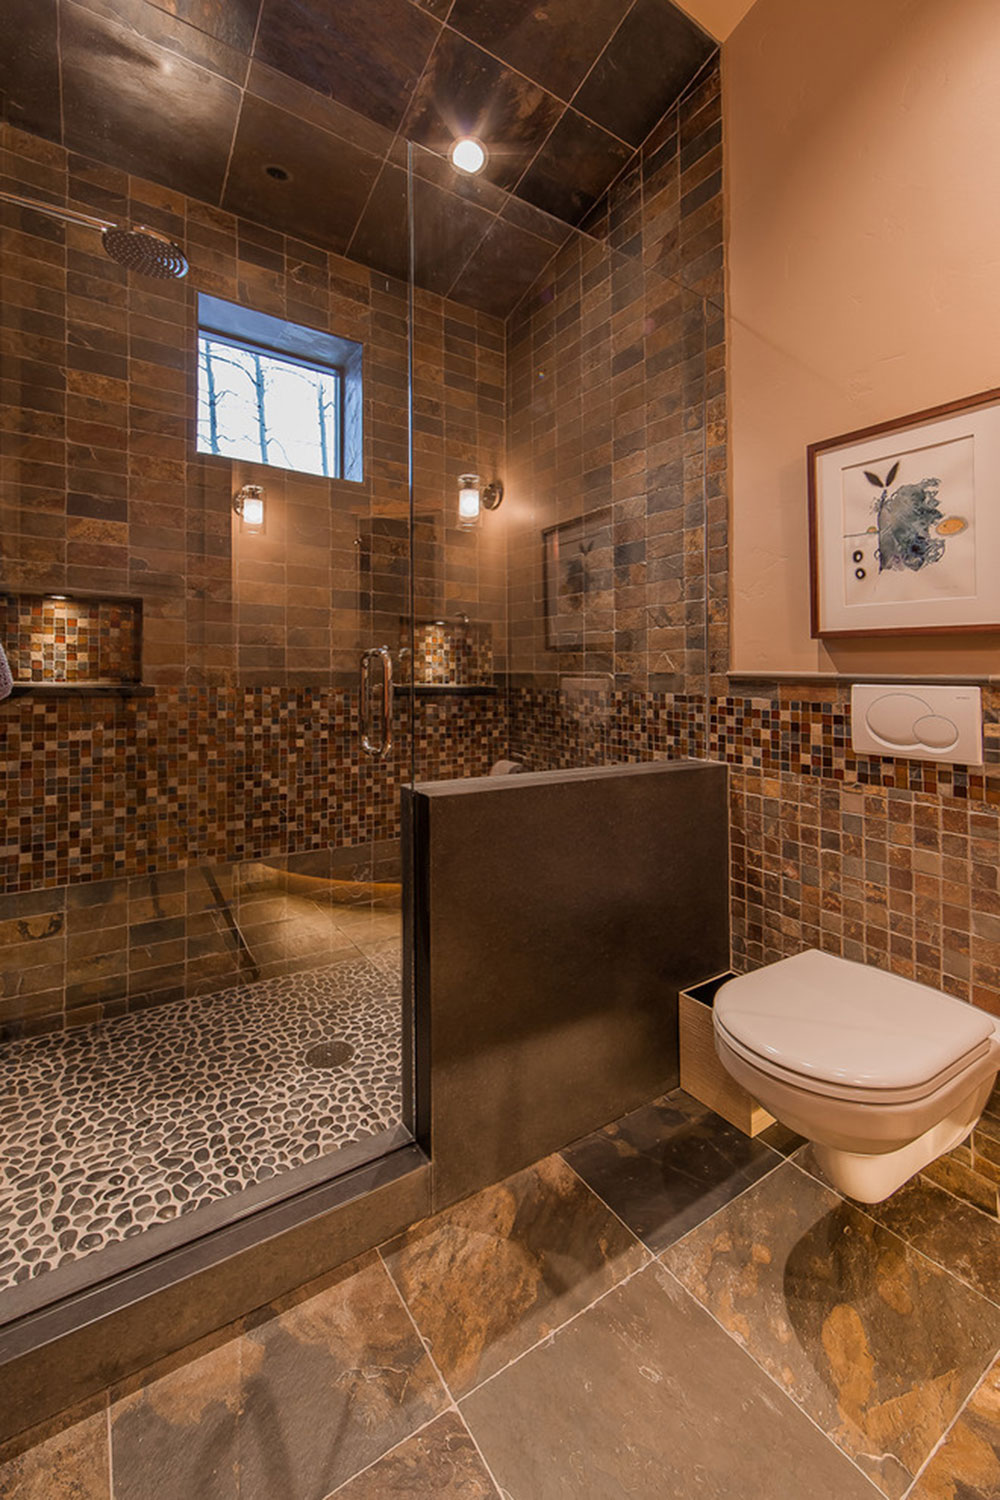 For-more-space-use-wall-mounted toilet-6 wall-mounted toilet ideas